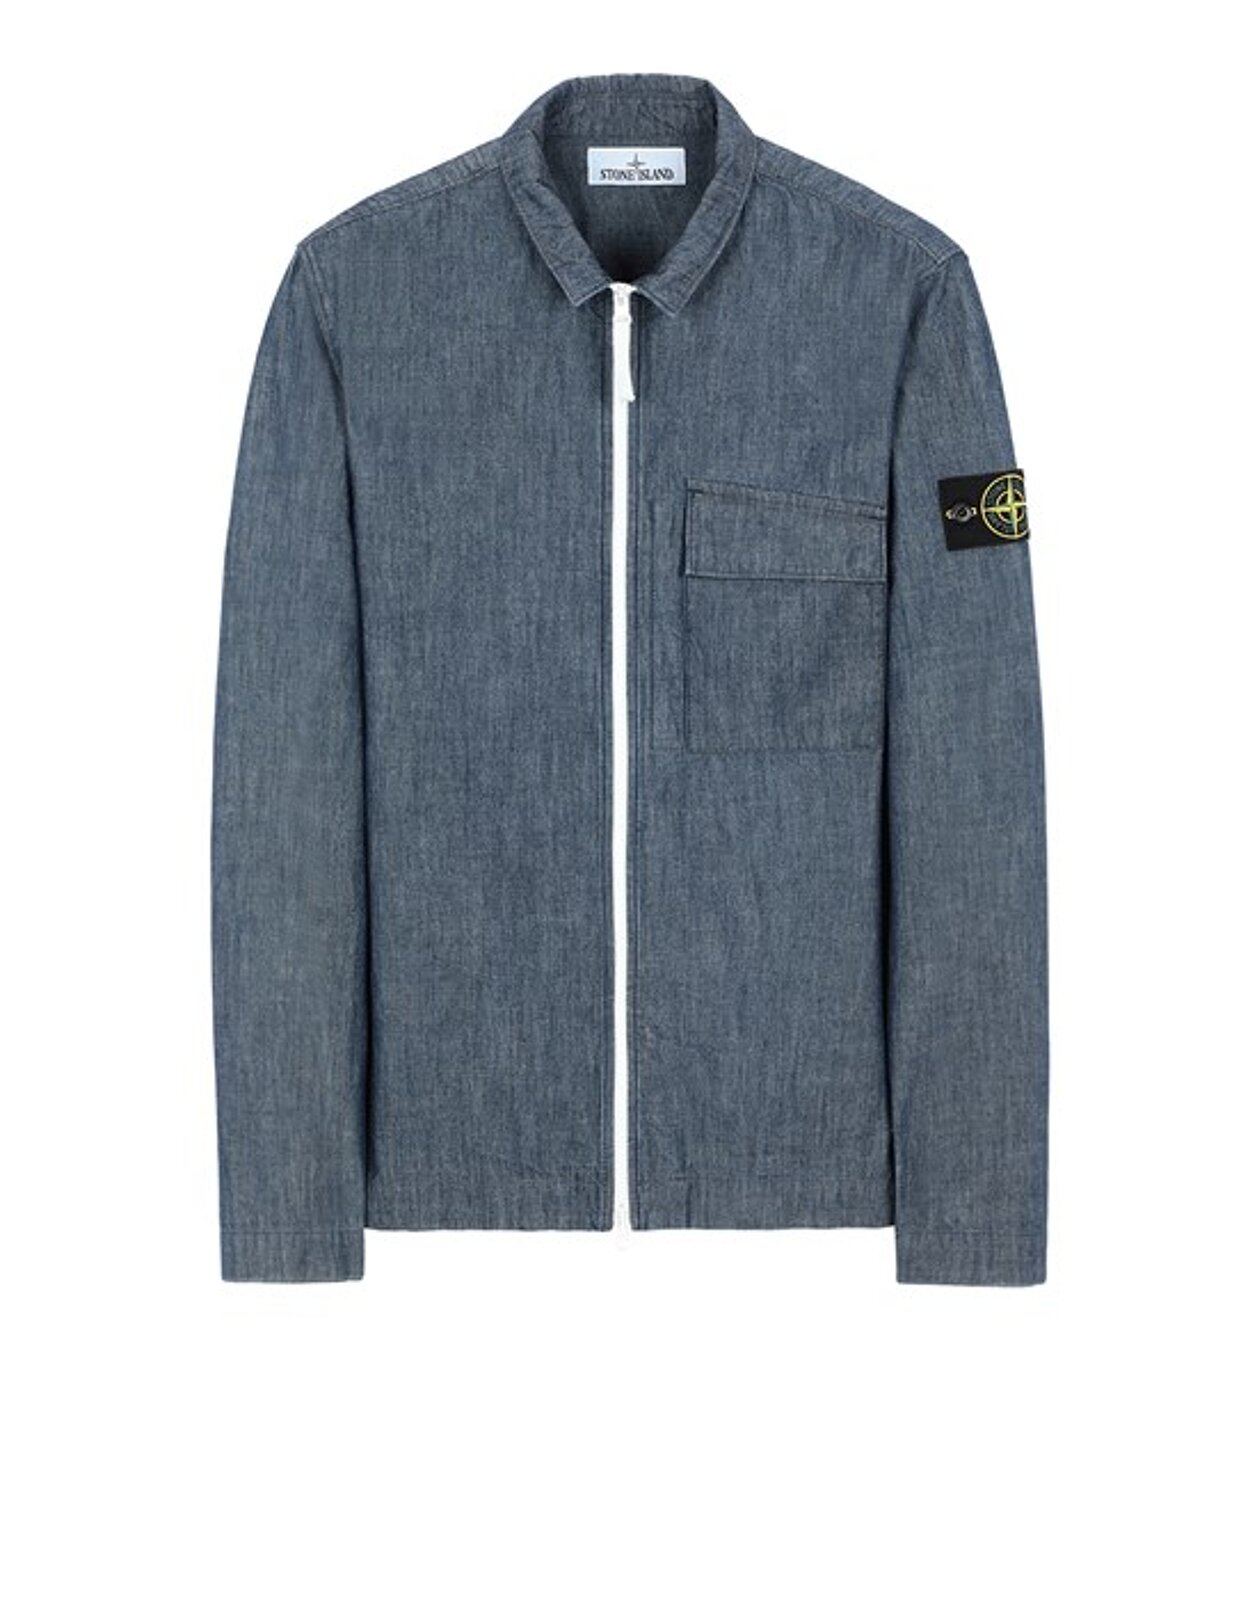 11207 Chambray Canvas - Stone Island